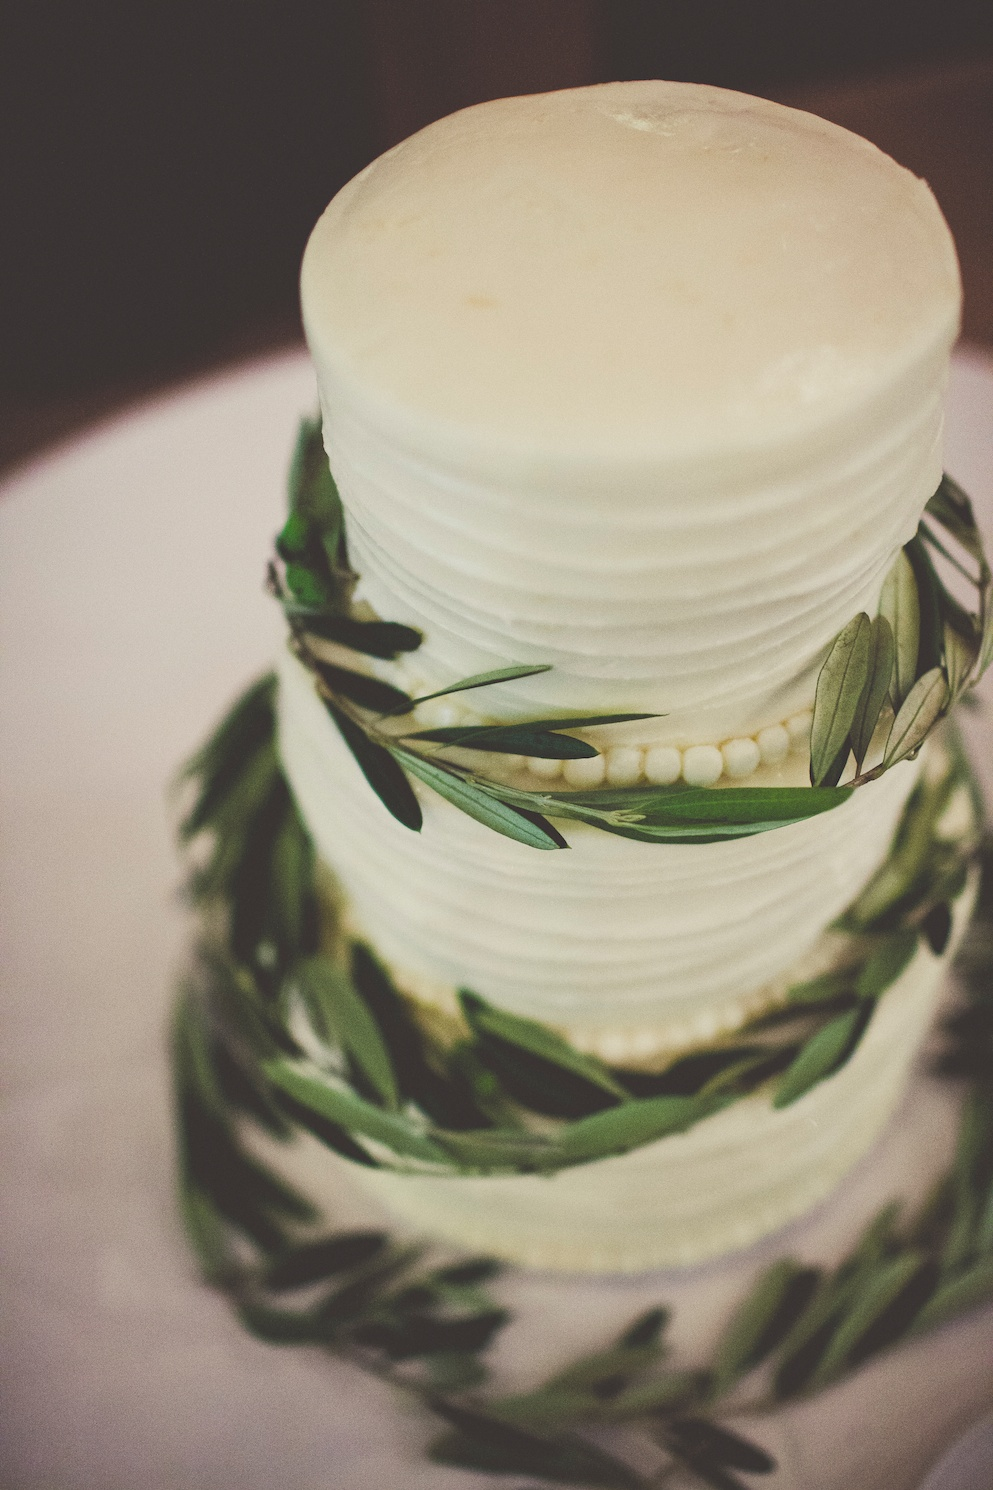 Russian Olive wedding cake Sundance Resort Wedding utah florist calie rose sarah kathleen photography